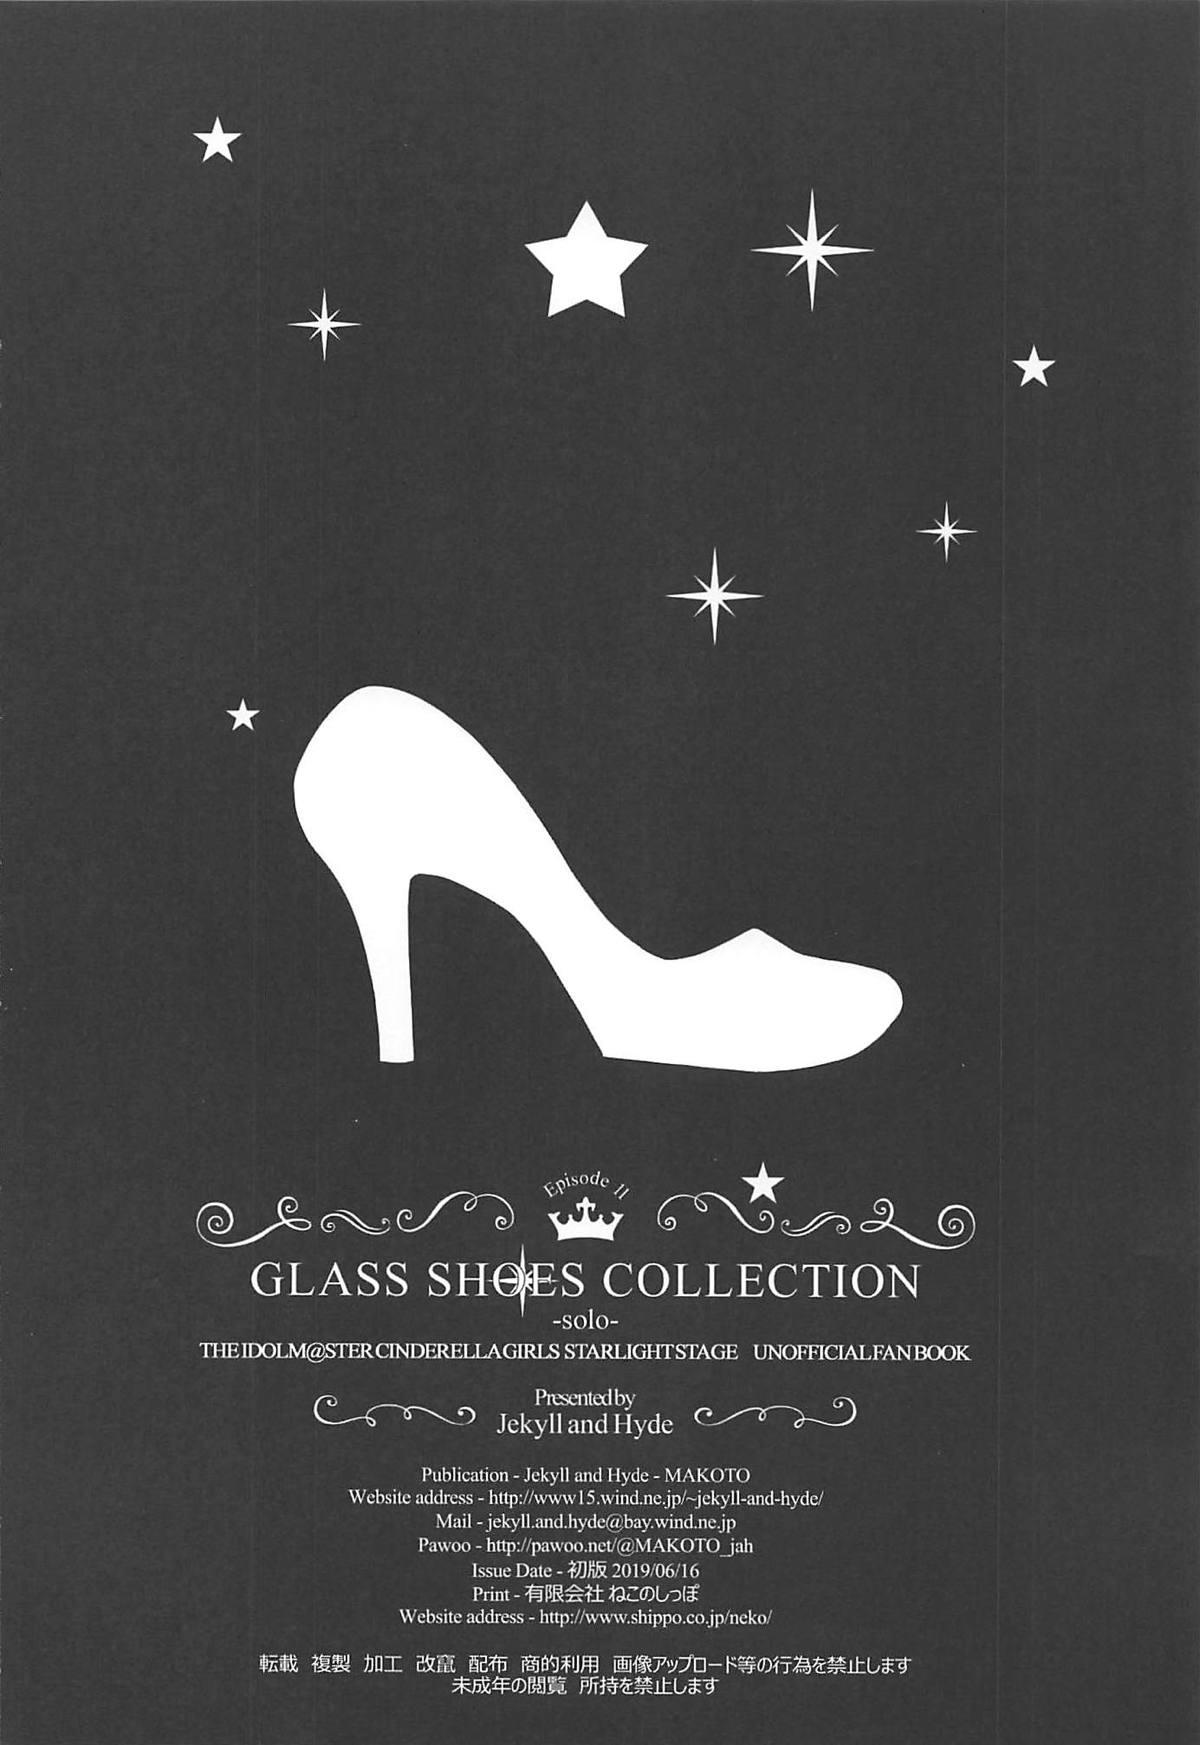 GLASS SHOES COLLECTION 71